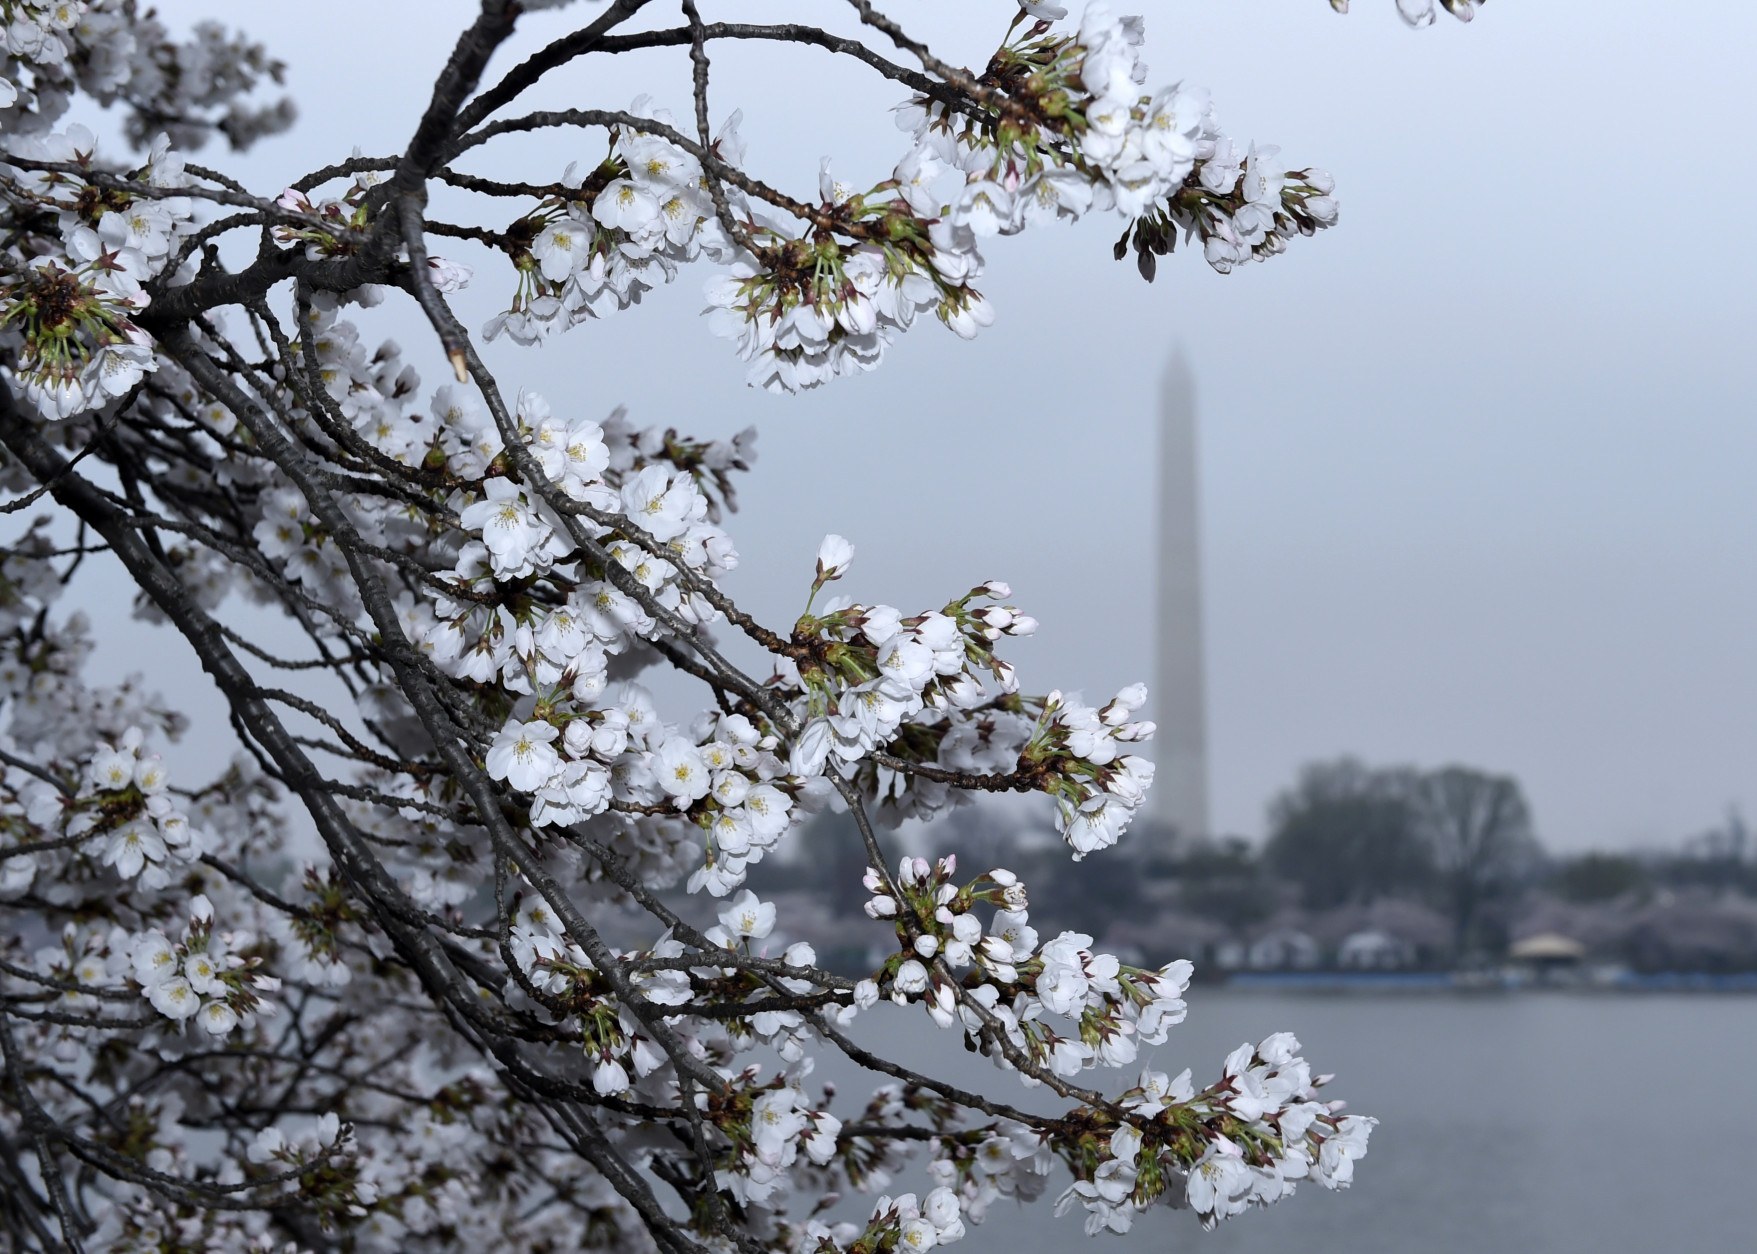 Cherry Blossoms are in bloom around the Tidal Basin across from the Washington Monument in Washington, Thursday, April 9, 2015. Washington's famous cherry blossoms are set to hit peak bloom this weekend as the National Cherry Blossom Festival draws big crowds for its annual parade and Japanese street festival. (AP Photo/Susan Walsh)